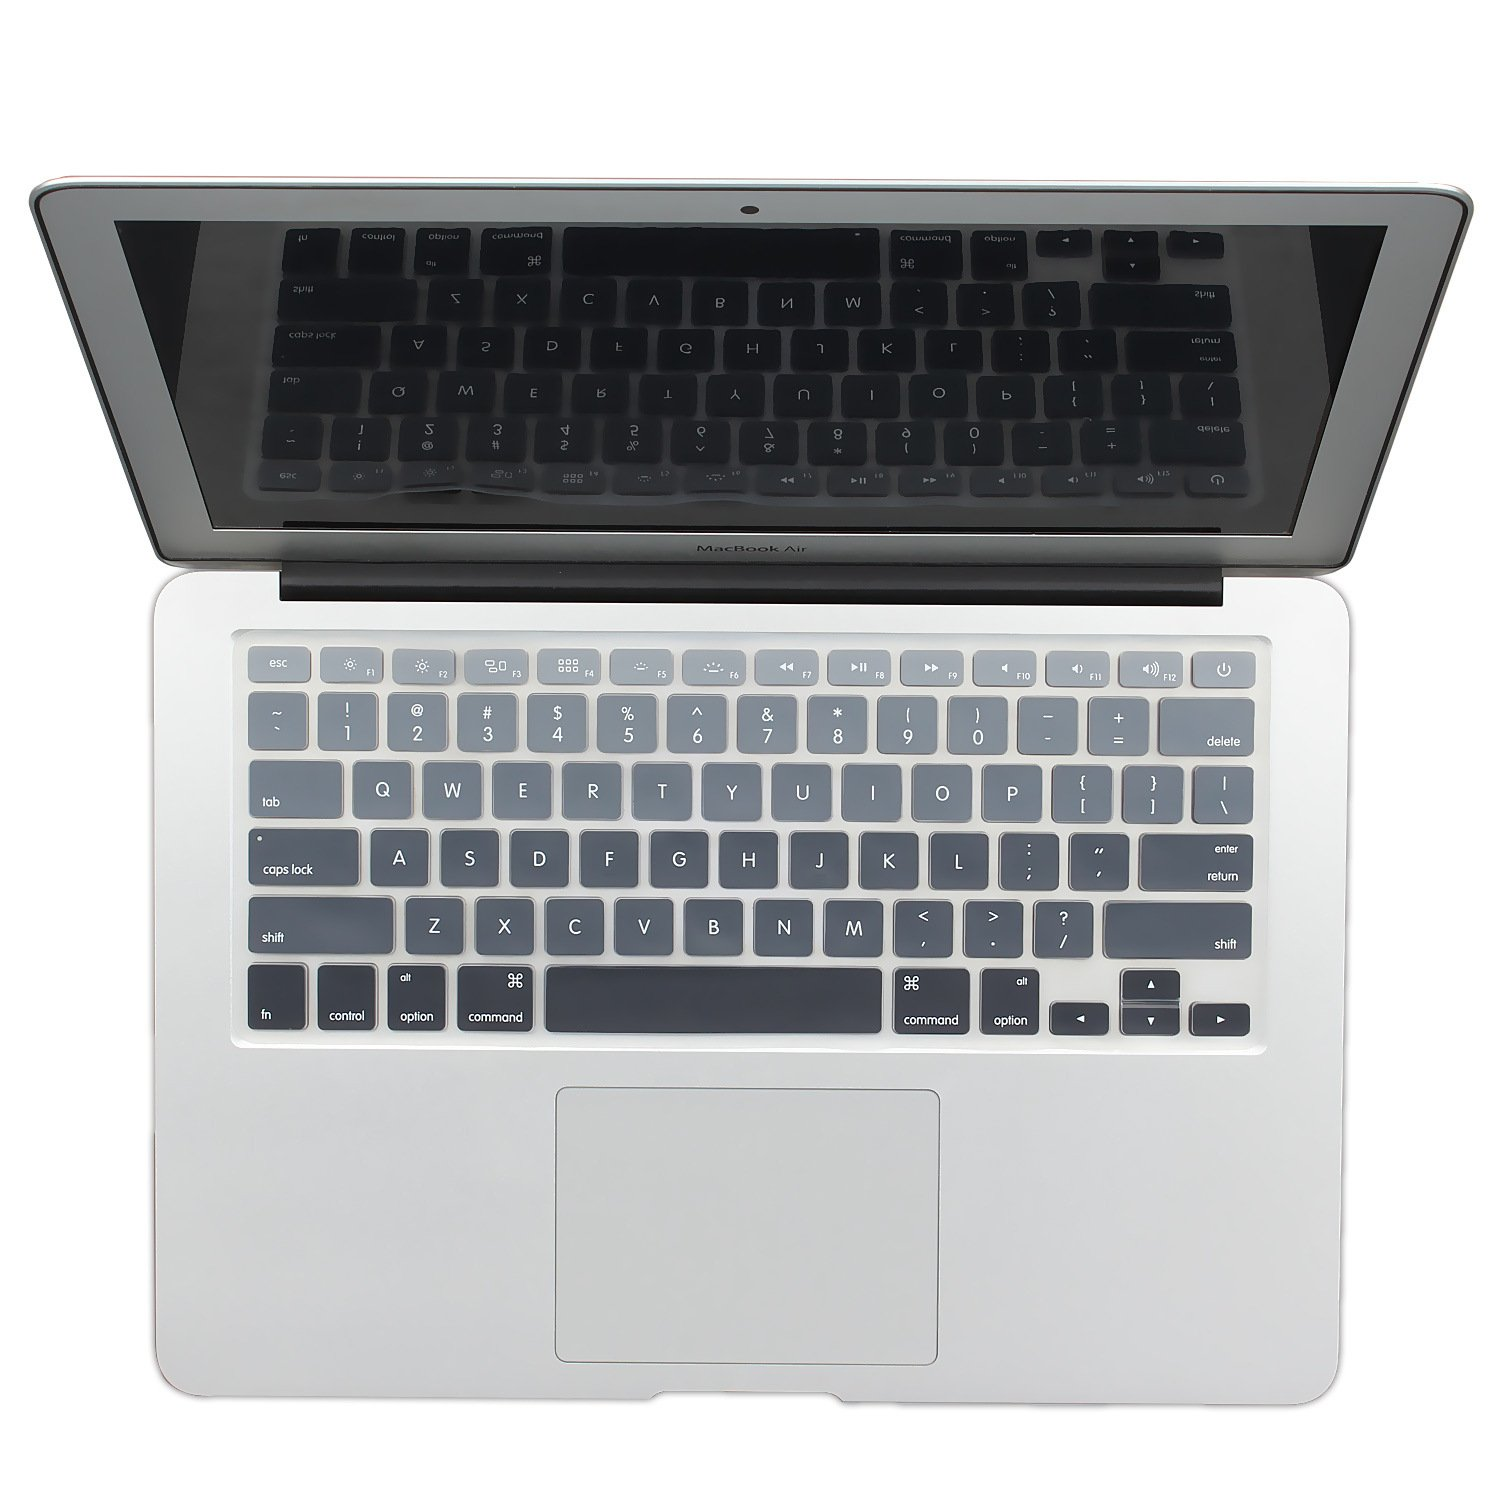 "Batianda New Ombre Color Keyboard Cover Protector Silicone Skin for MacBook Air 13"" MacBook Pro 13"" 15"" 17"" (with or w/Out Retina Display) - Gradient Grey"